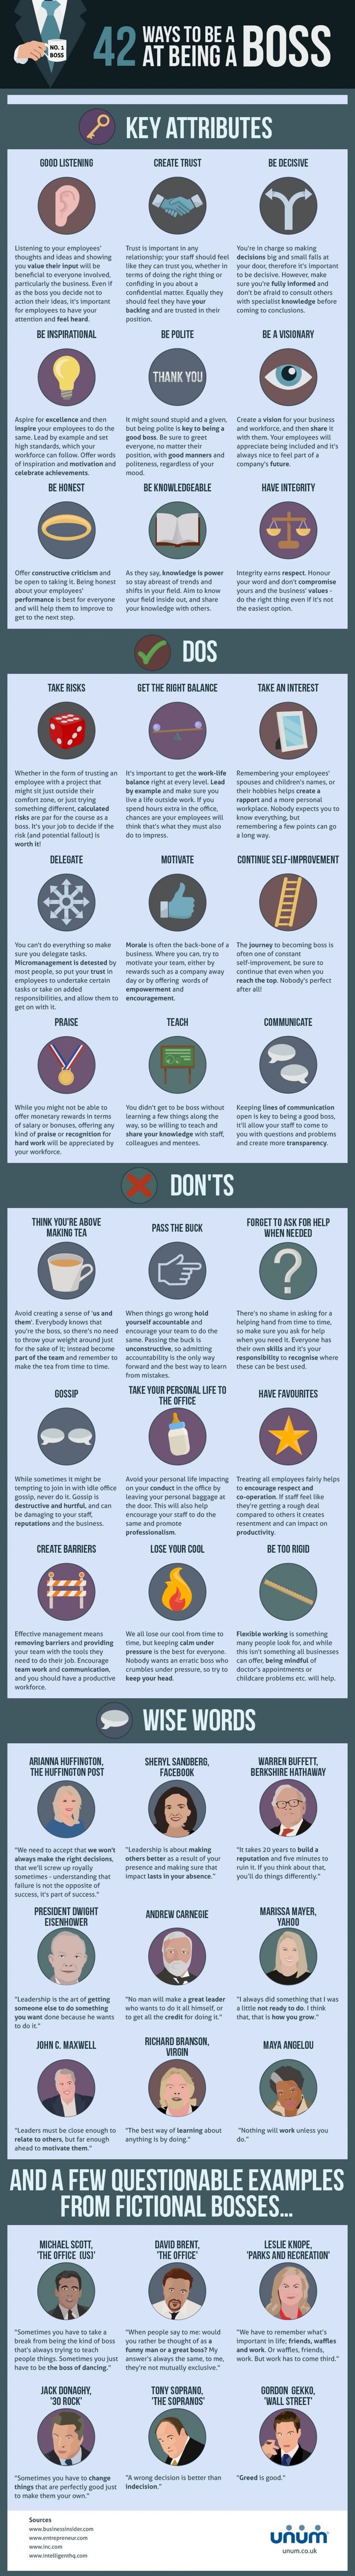 42 Ways to be a Boss at Being a Boss #infographic